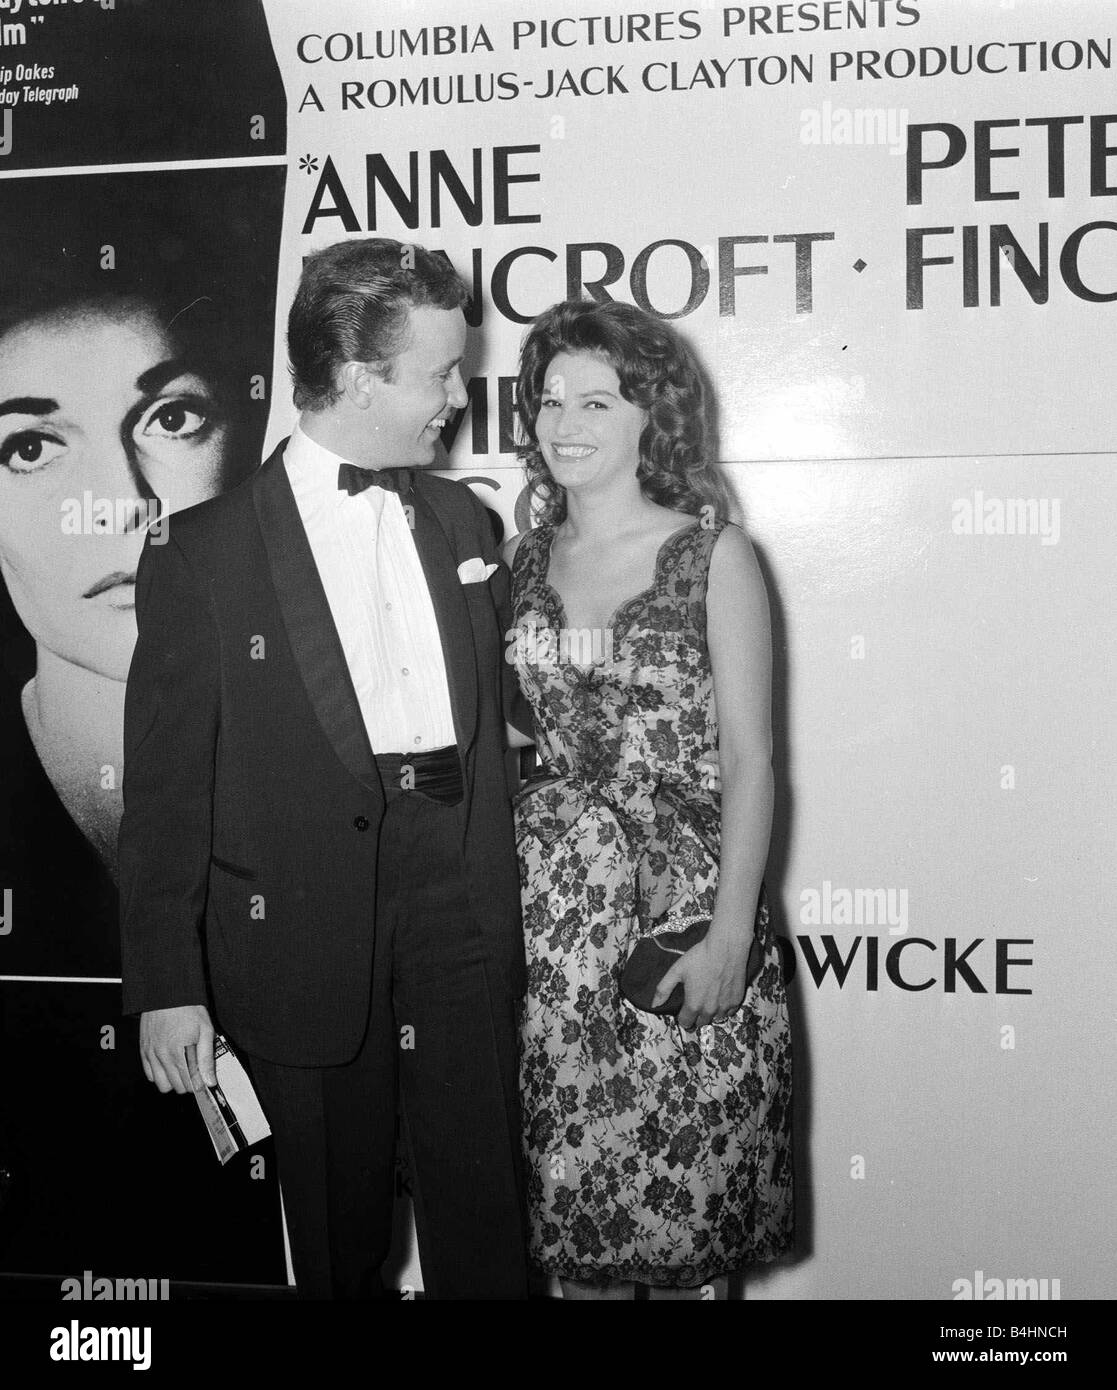 The Pumpkin Eater Film Premiere July 1964 Peter Benison Actor and Yvonne Buckingham Actress pictured arriving at - Stock Image